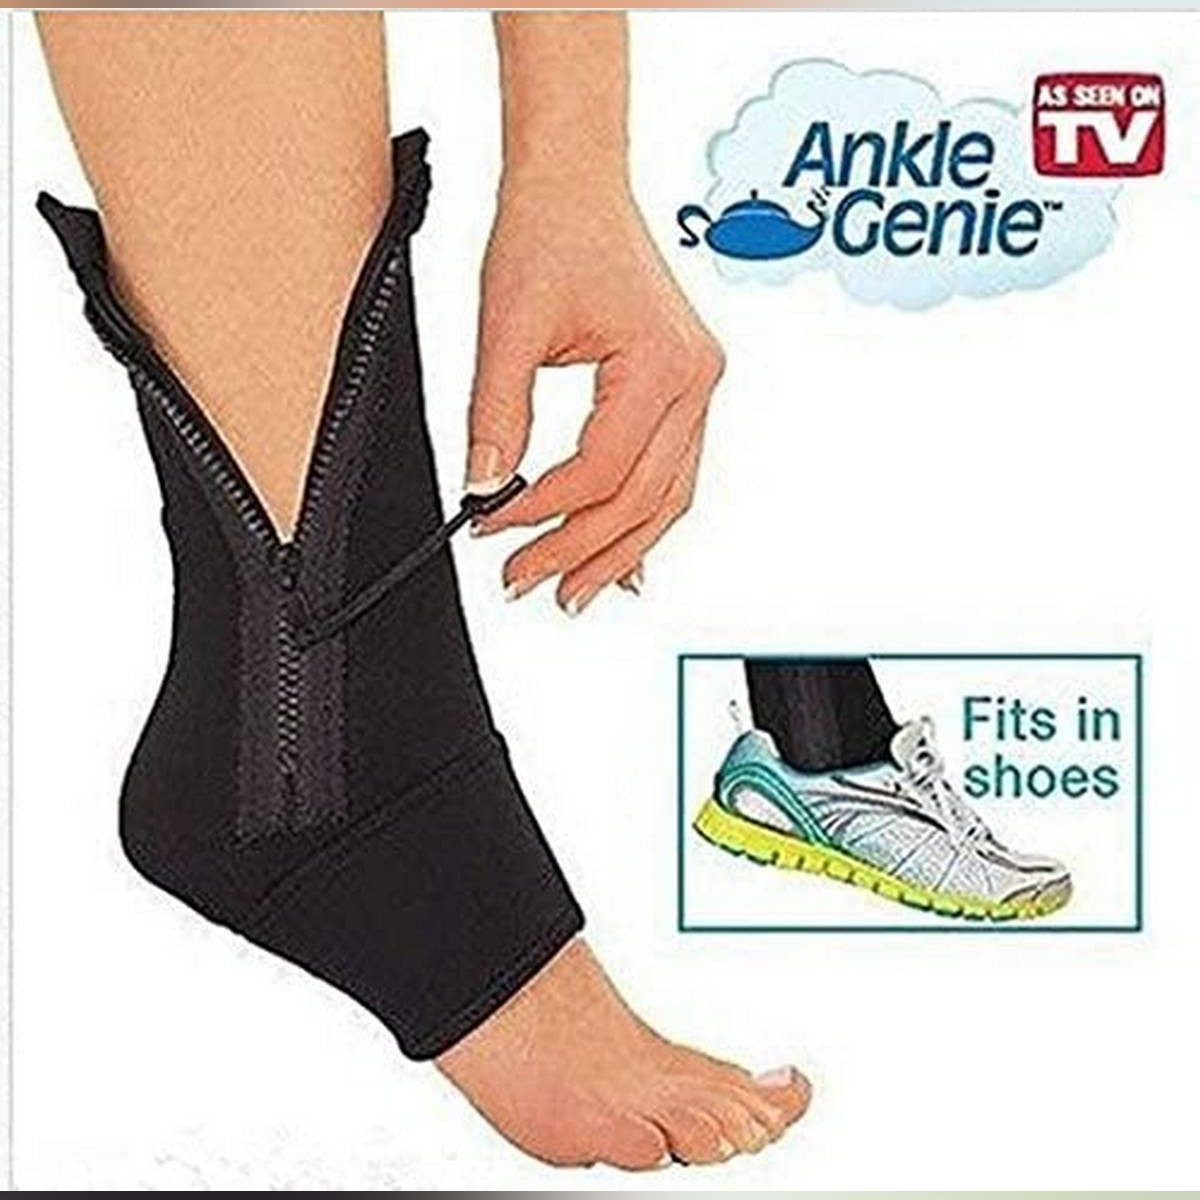 Ankle Genie Zip up Compression Support Socks